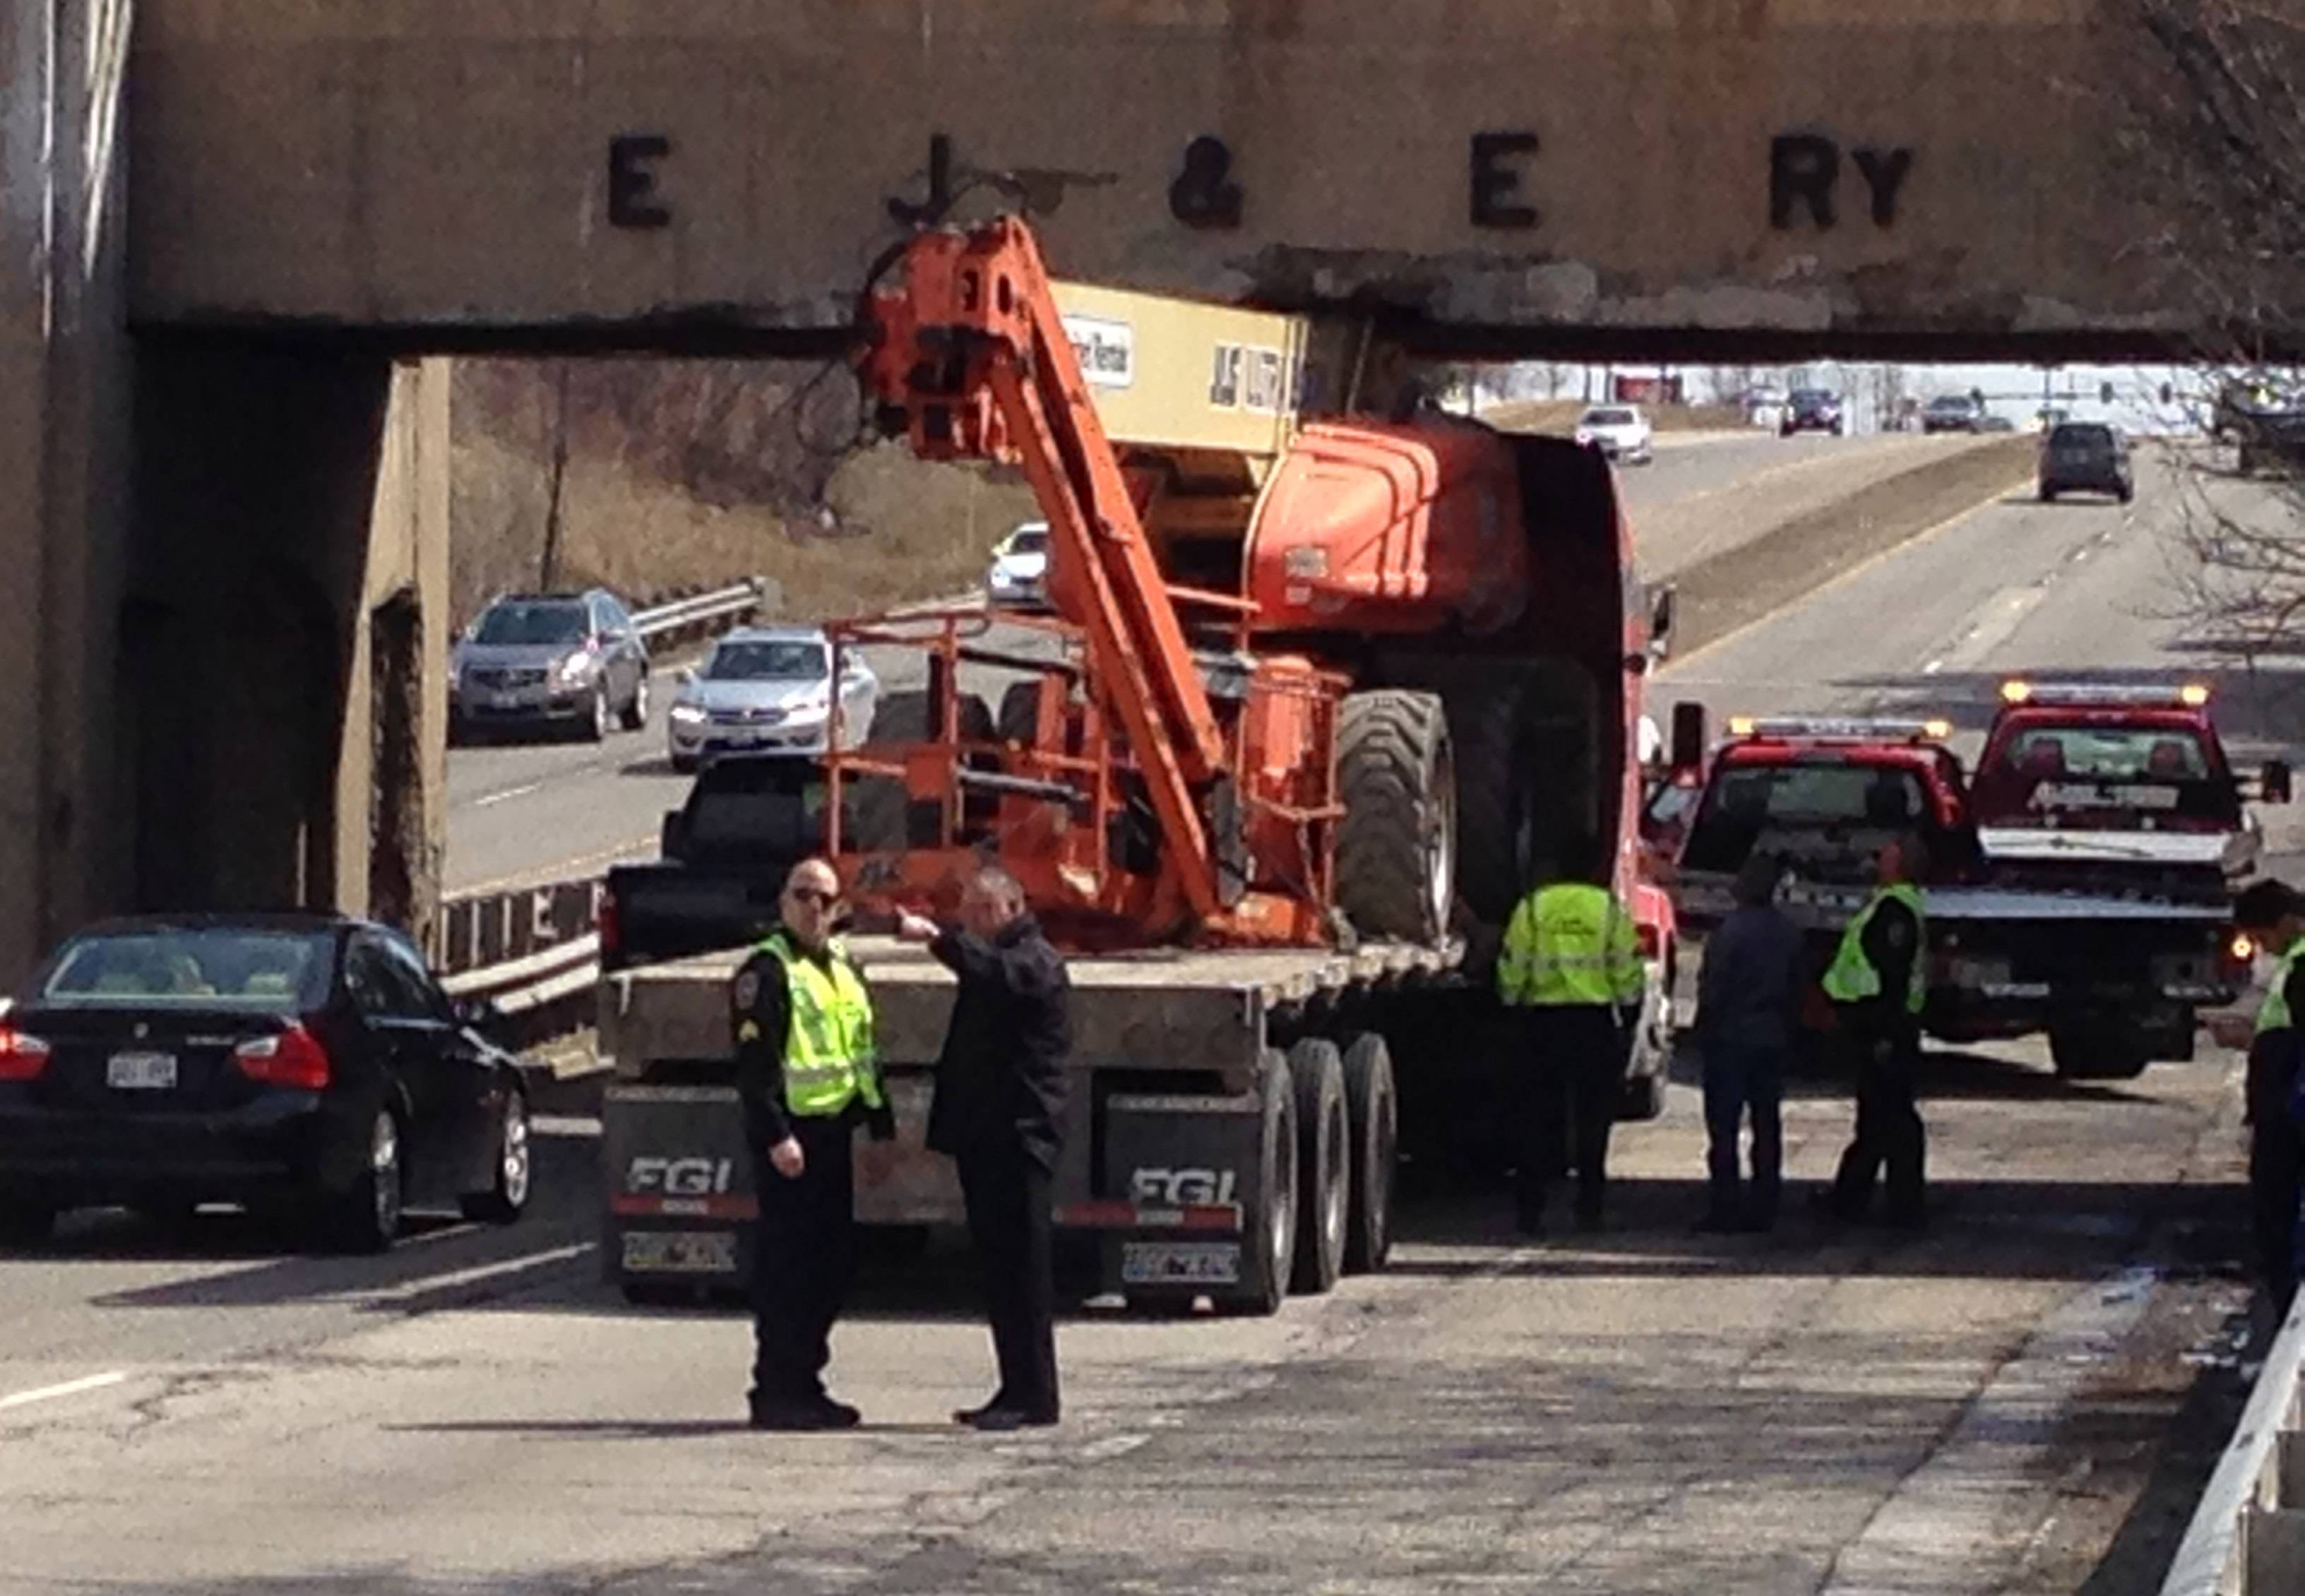 Southbound traffic on Route 12 was slowed Monday morning after a truck carrying a piece of construction equipment got stuck under a railroad bridge near Ela Road in Lake Zurich.